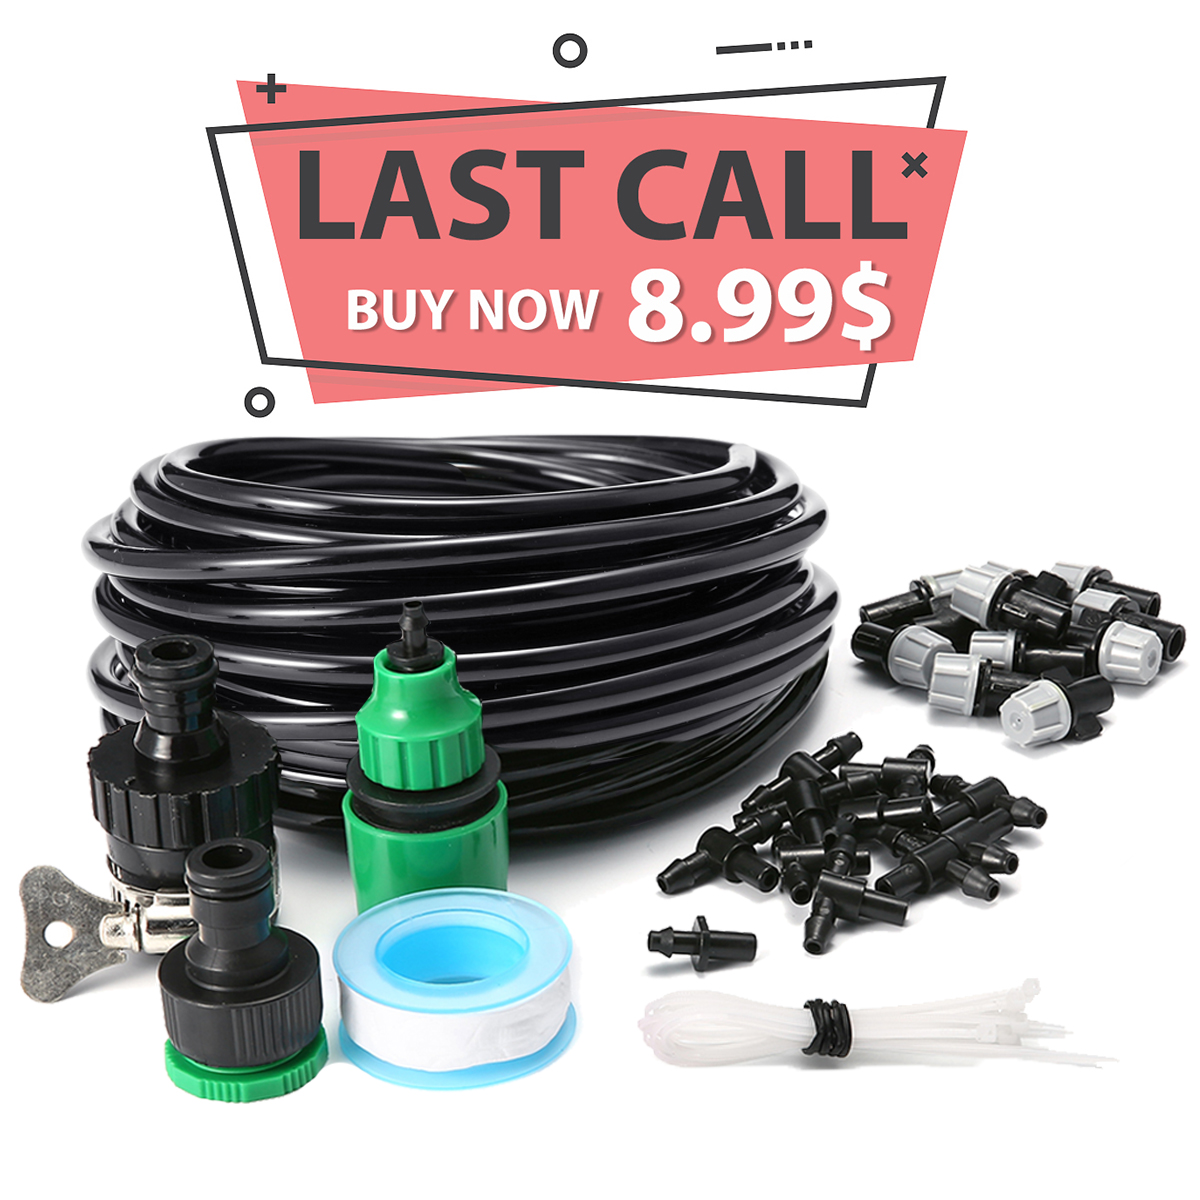 KINGSO 33ft Micro Drip Irrigation System Kit Home Garden Patio Micro Flow Drip Irrigation Misting Cooling System Plastic Mist Nozzle Sprinkler Micro Bubbler